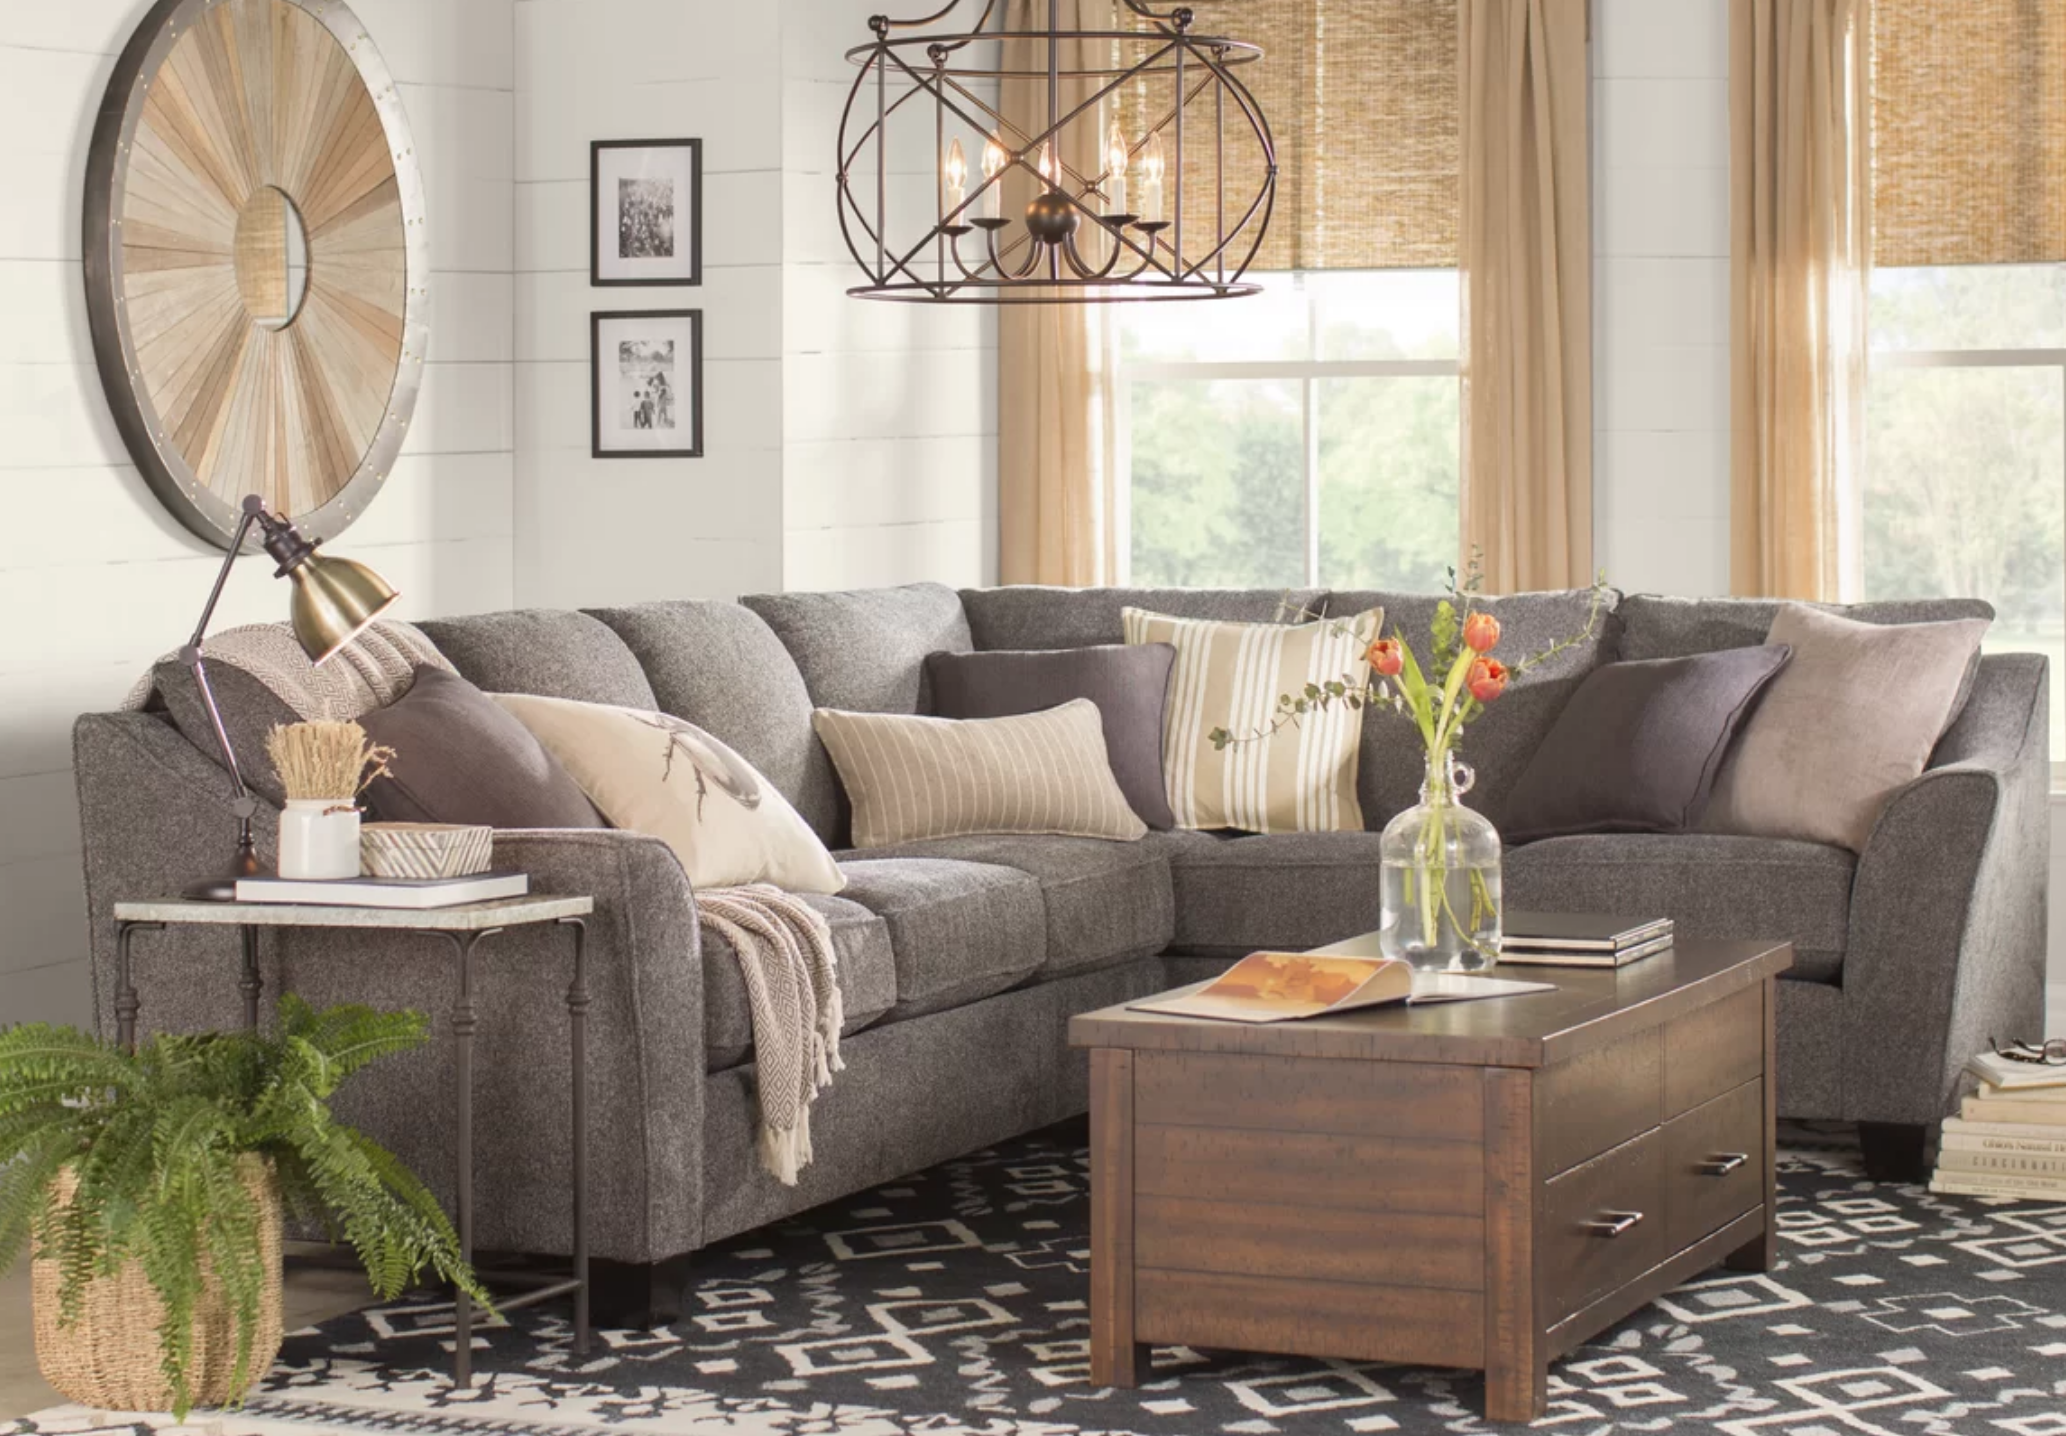 Wayfair just launched an online interior design service thatll change your life